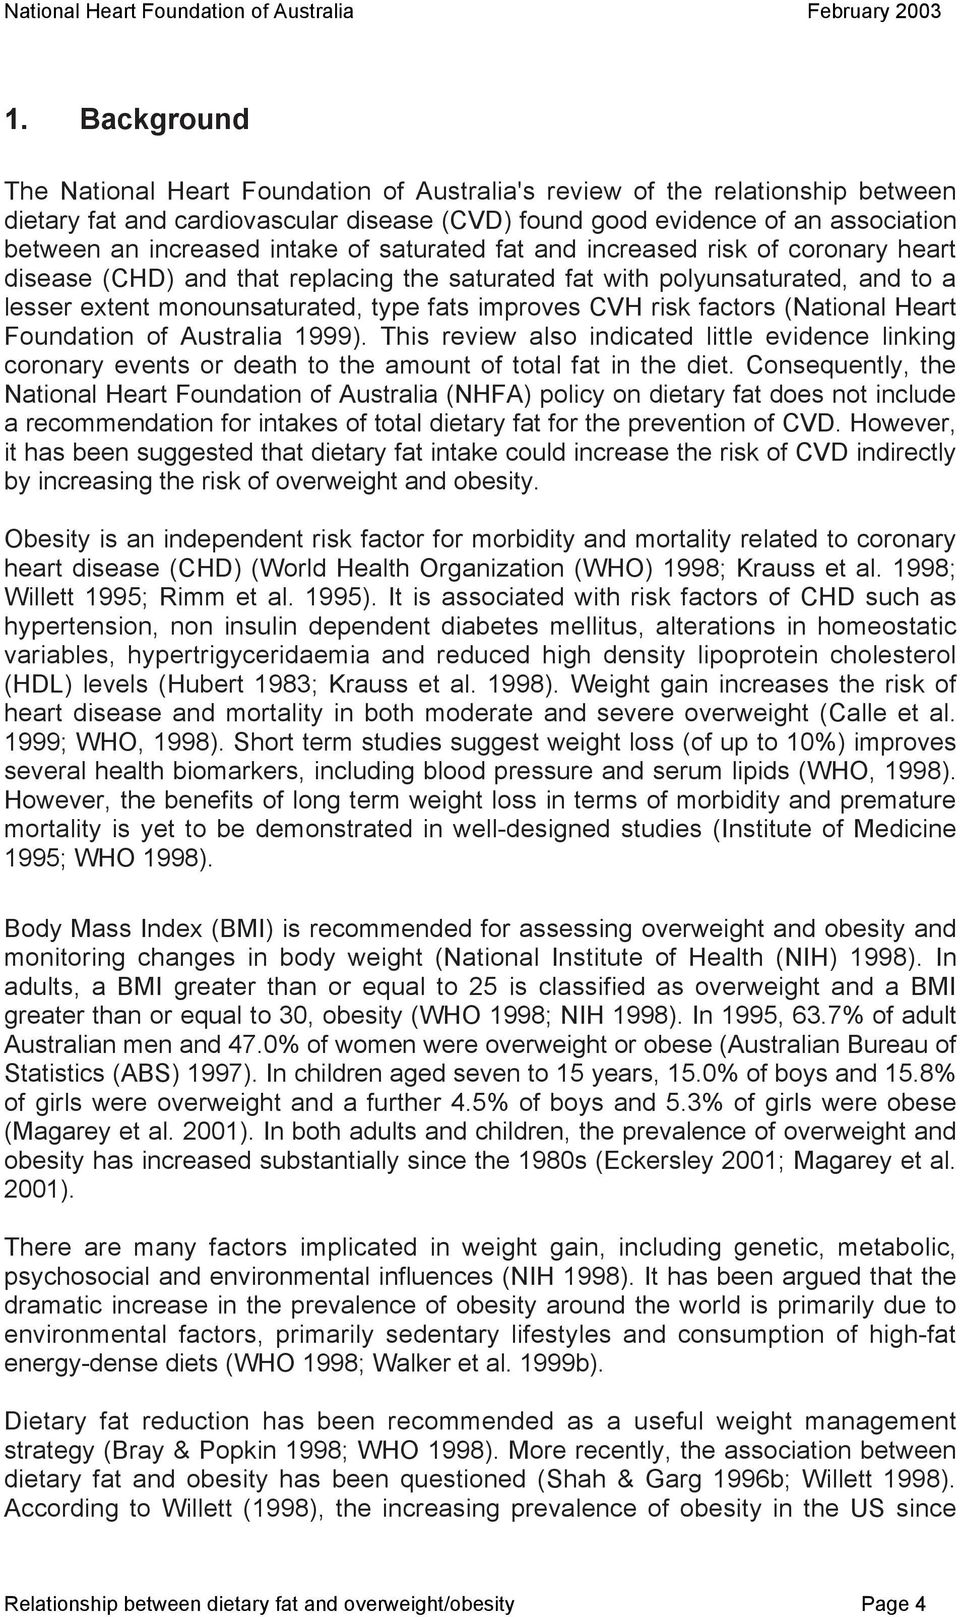 risk factors (National Heart Foundation of Australia 1999). This review also indicated little evidence linking coronary events or death to the amount of total fat in the diet.